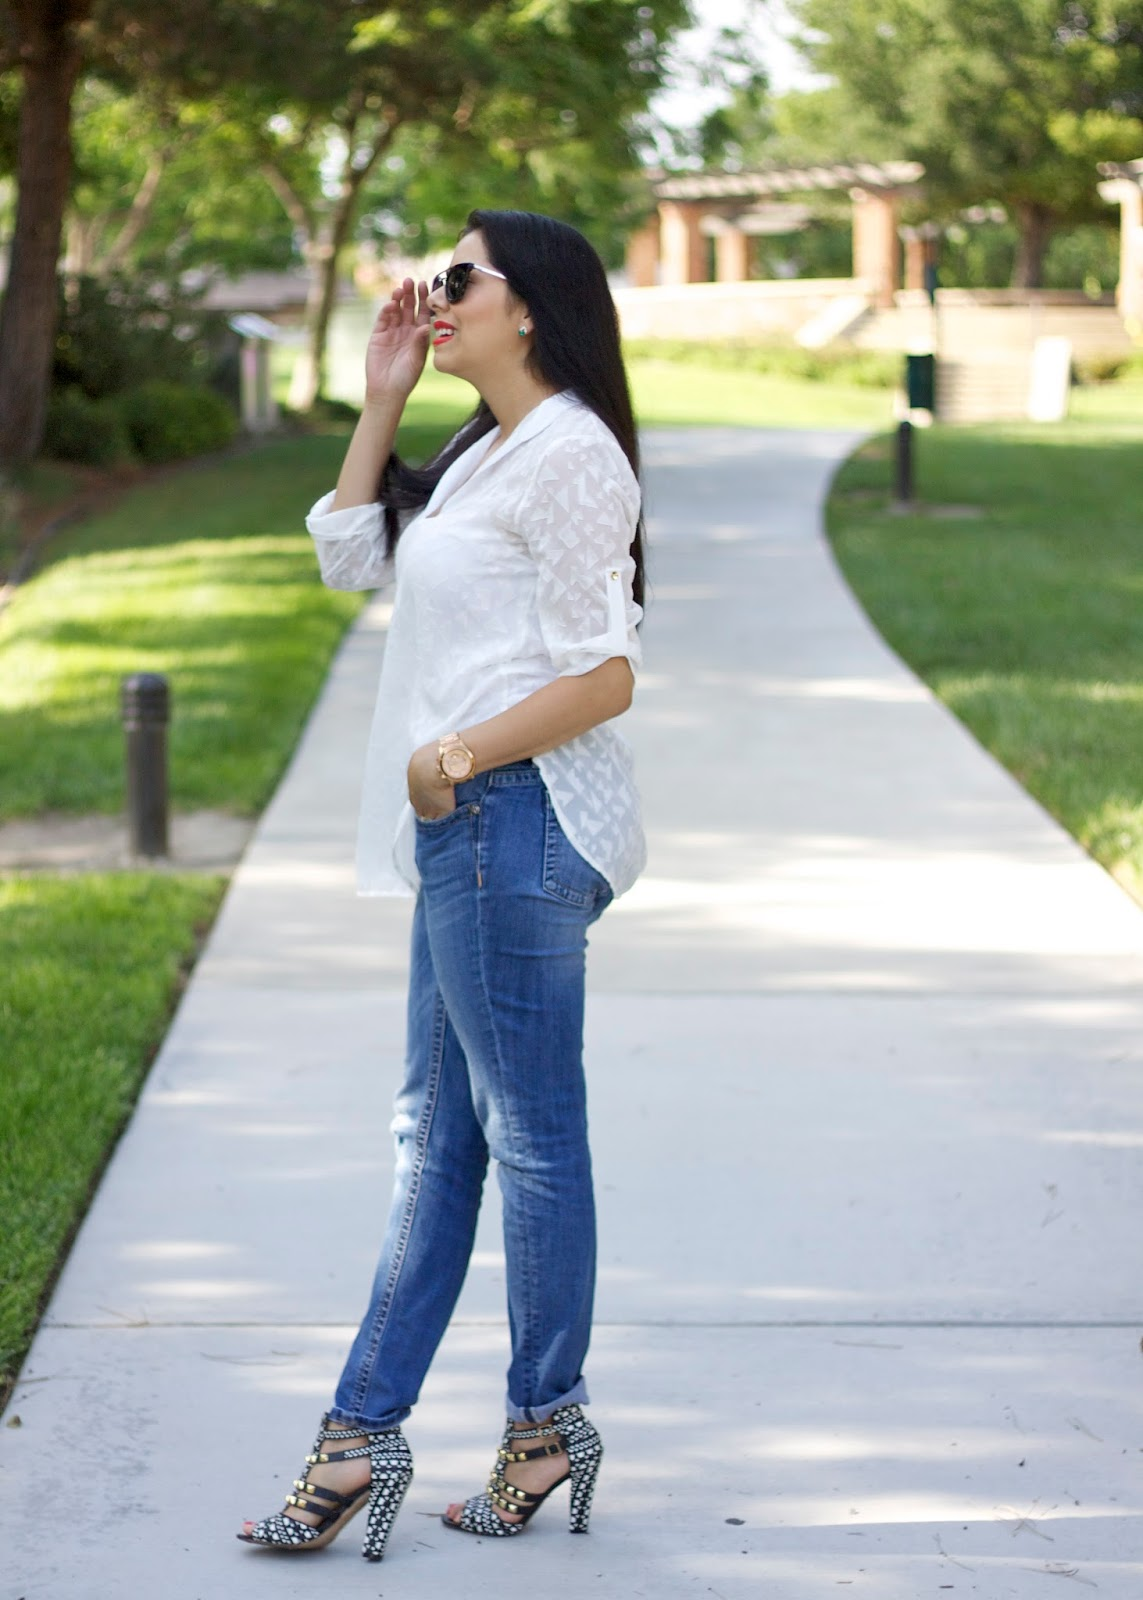 miss me jeans, good jeans for curvy women, so cal style, mexican american blogger